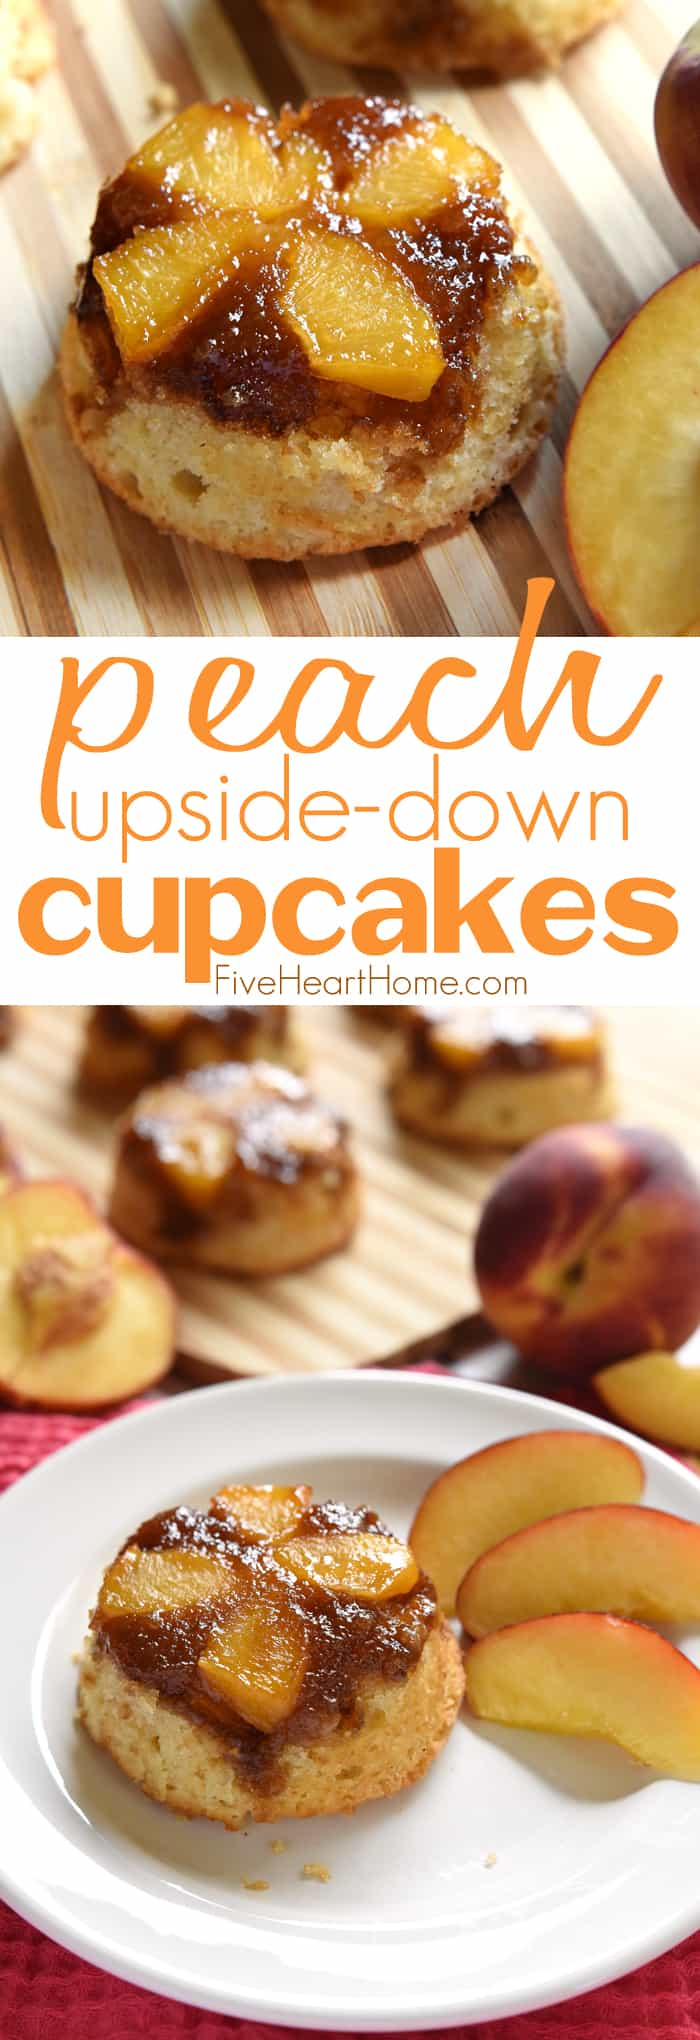 Peach Upside-Down Cupcakes Collage with Text Overlay